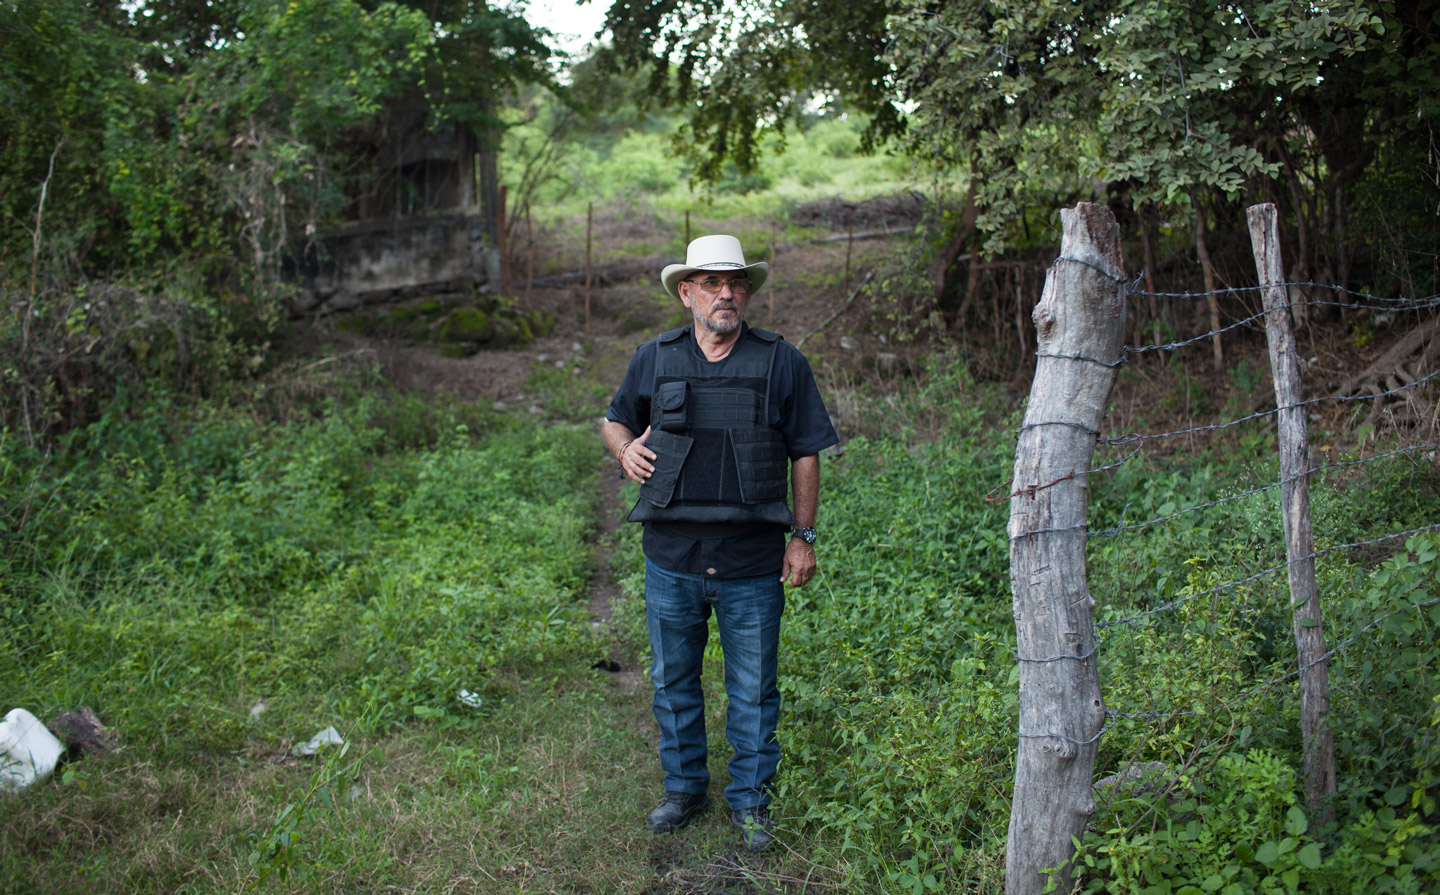 "Hipolito Mora at his families lime ranch in La Ruana, Michoacán, Mexico, Tuesday, December 15, 2015. Hipolito Mora was one of the original founder of the autodefensa movement, which saw vigilantes spread across the state of Michoacán and drive out the cartel group the 'Knights of Templar'. Since the uprising began in 2013, other criminal groups have filled the space of the previous cartel and many look at the autodefensa movement as a failure. Mora has had many challenges over the last three years, including being sent to jail twice and having his son killed in a shootout Dec. 16, 2014 during a shootout with a rival group. This ranch is a very important place for Mora. ""This is where I expect to die"" said Mora, motioning to the hills surrounding the ranch, which would make for a great spot for a shooter to hide. ""My son and I had plans to build up the house and make this out place, it was out dream, but that was before."" (Brett Gundlock/Boreal Collective)"